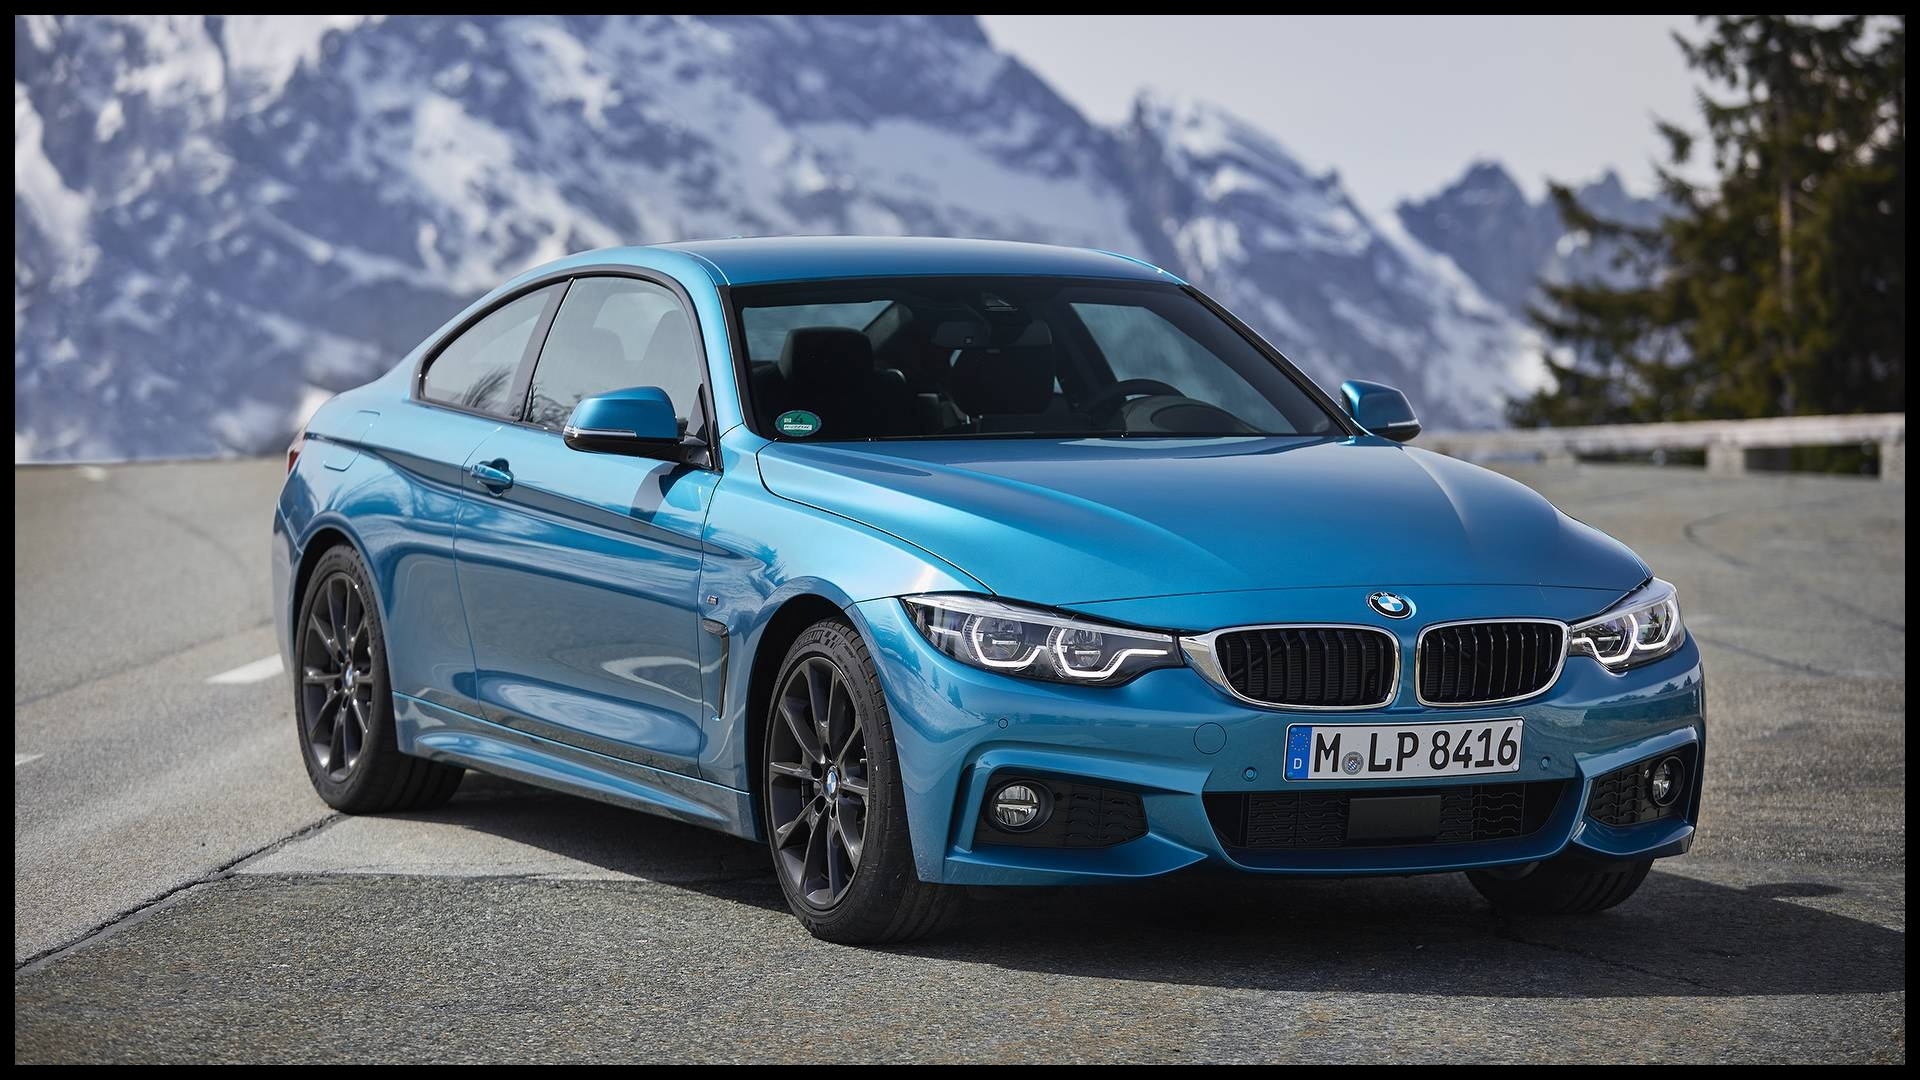 Real time traffic updates plus navigation information e to life on an upgraded high resolution digital instrument cluster in the new 2019 BMW 430i